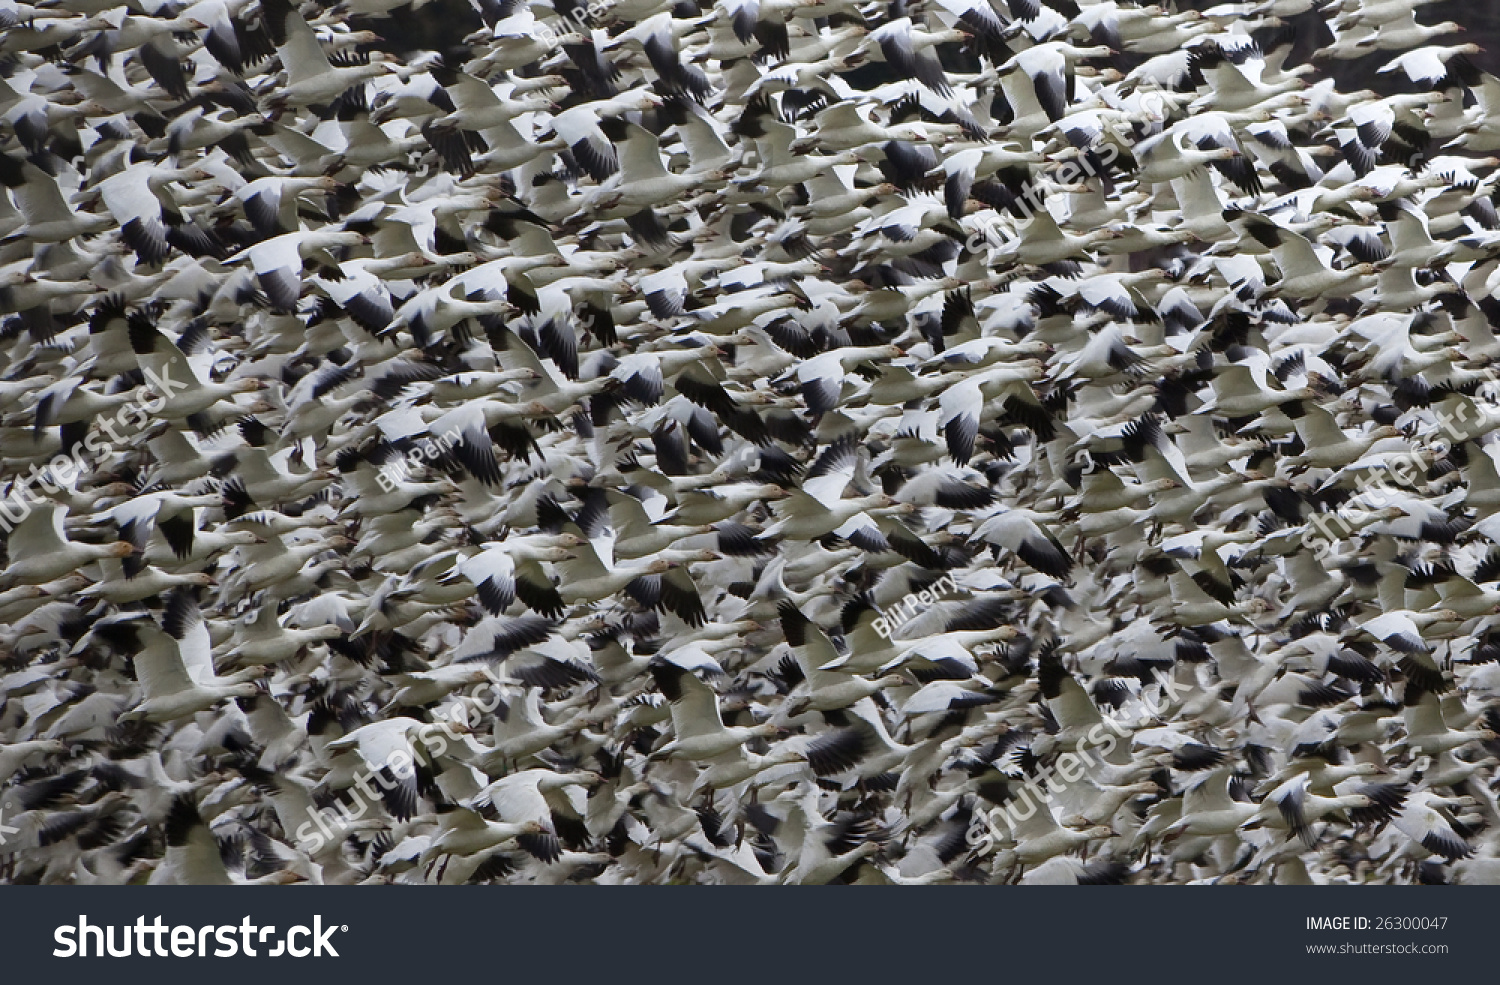 how to call snow geese